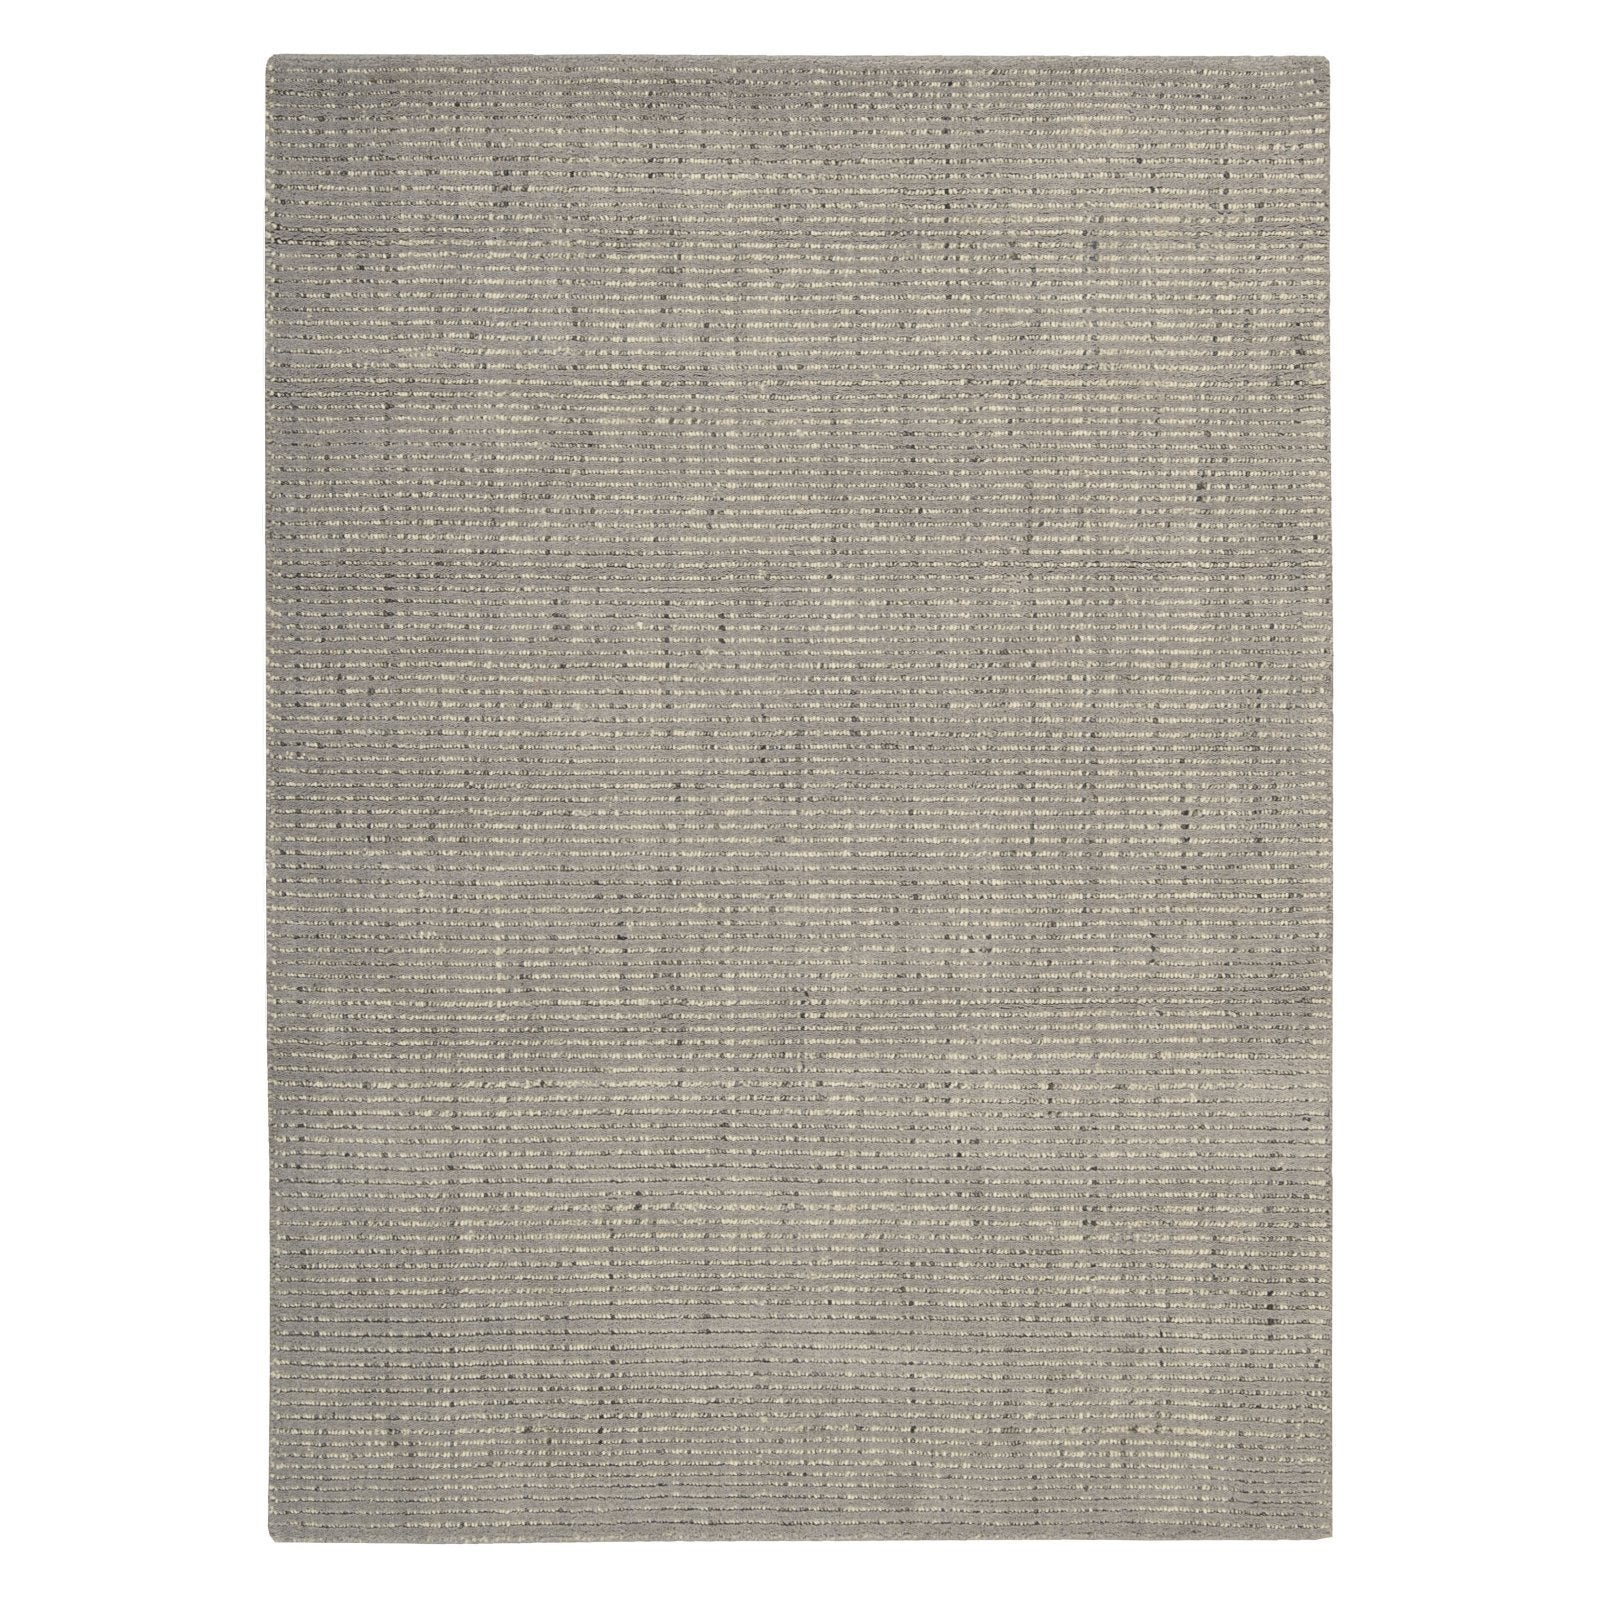 "Intermix Smoke Rug - 4 Sizes Available Rugs Nourison 5'3"" x 7'5"" Area"